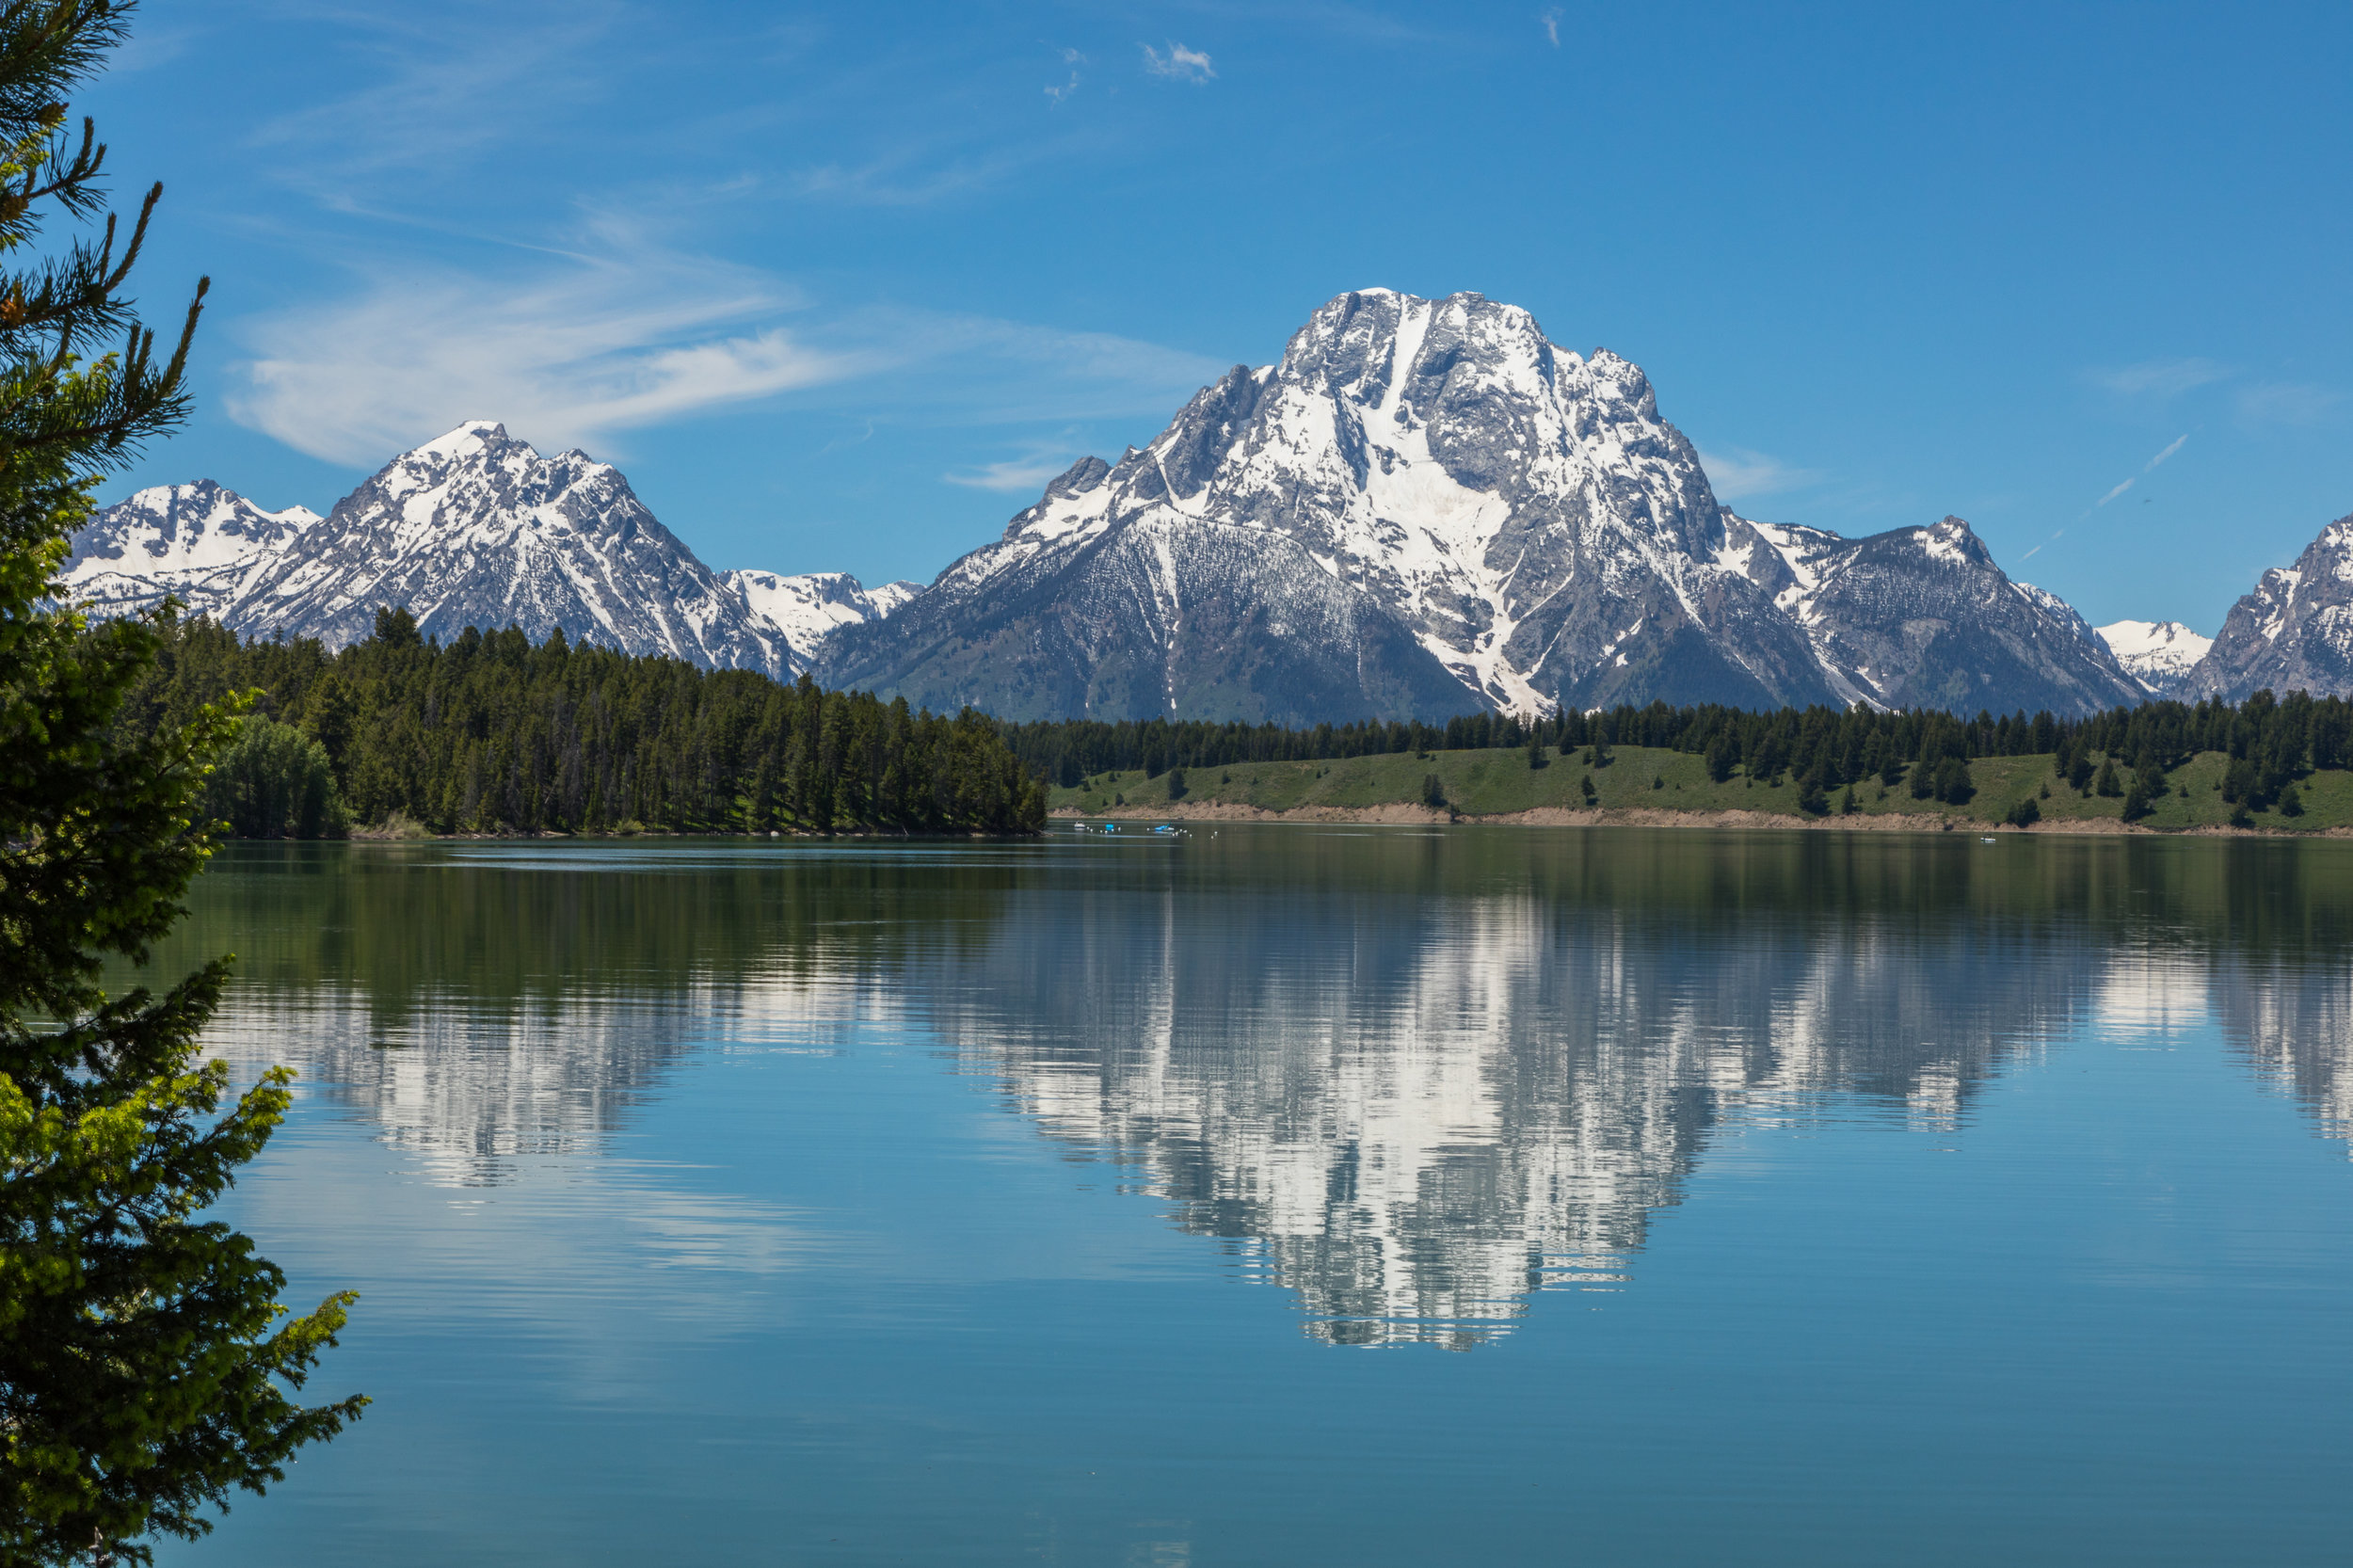 Reflection of Mount Moran in Jackson Lake, Image # 2481